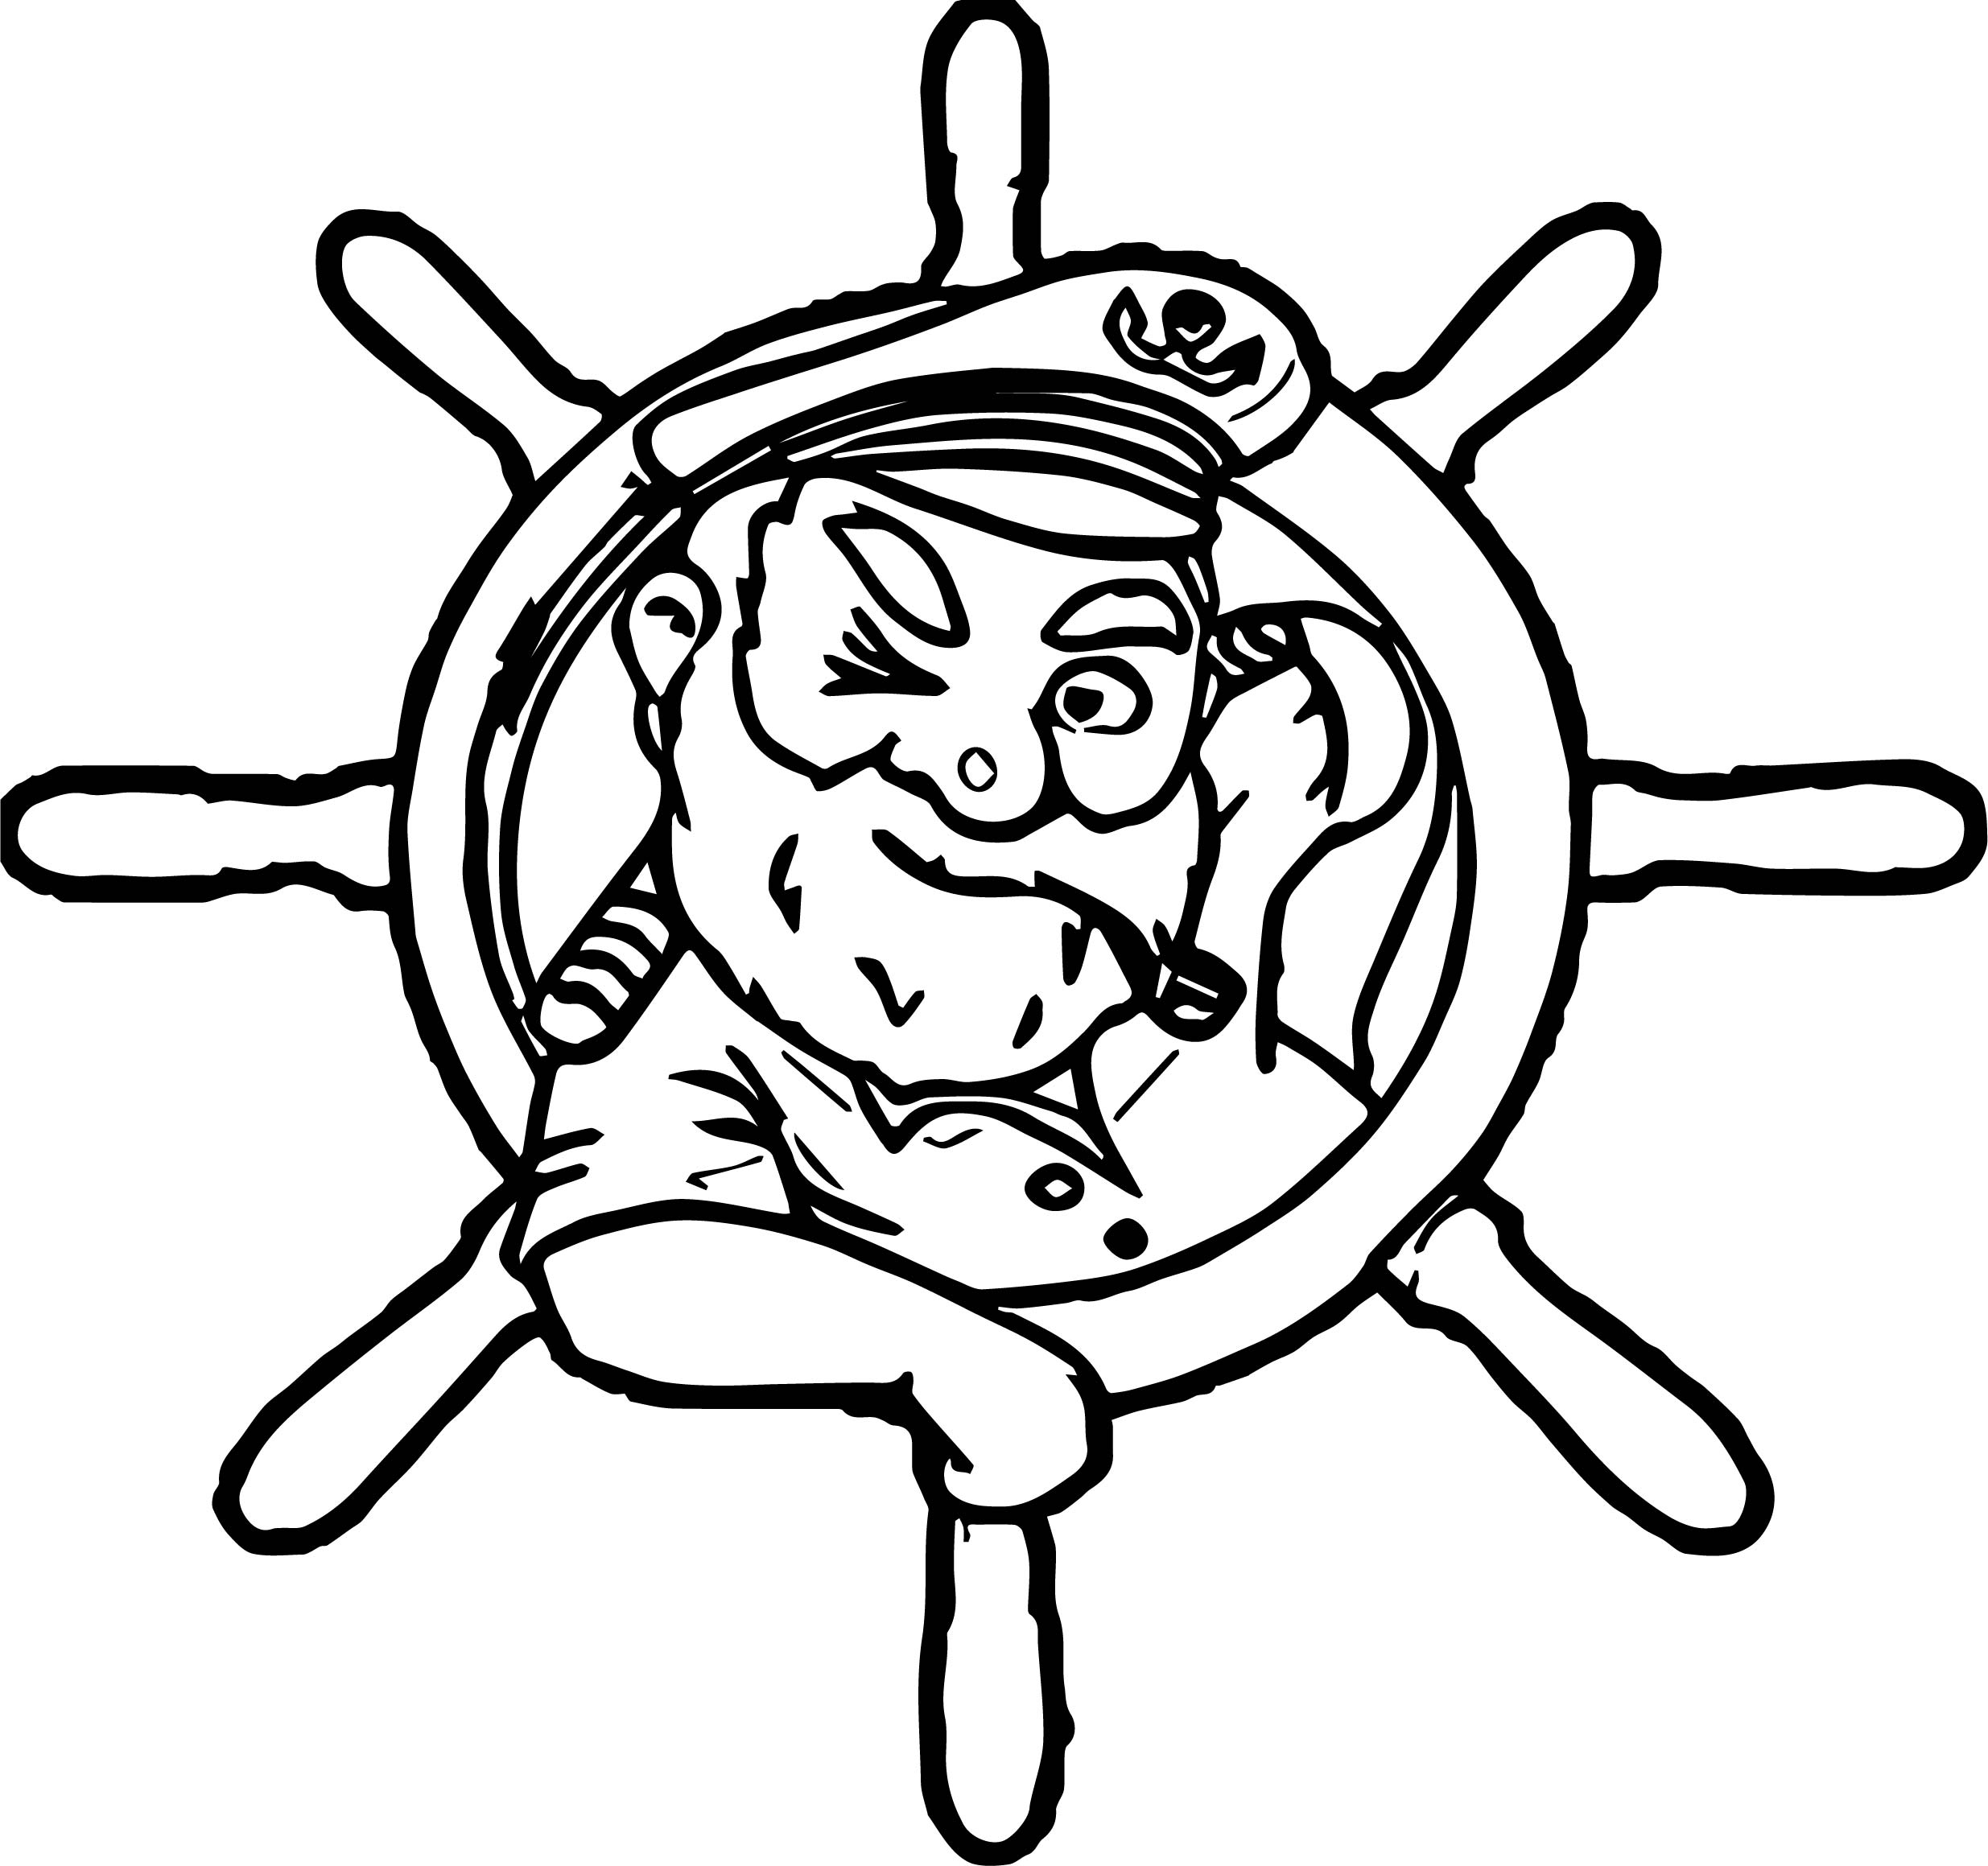 Captain Rudder Man Coloring Page